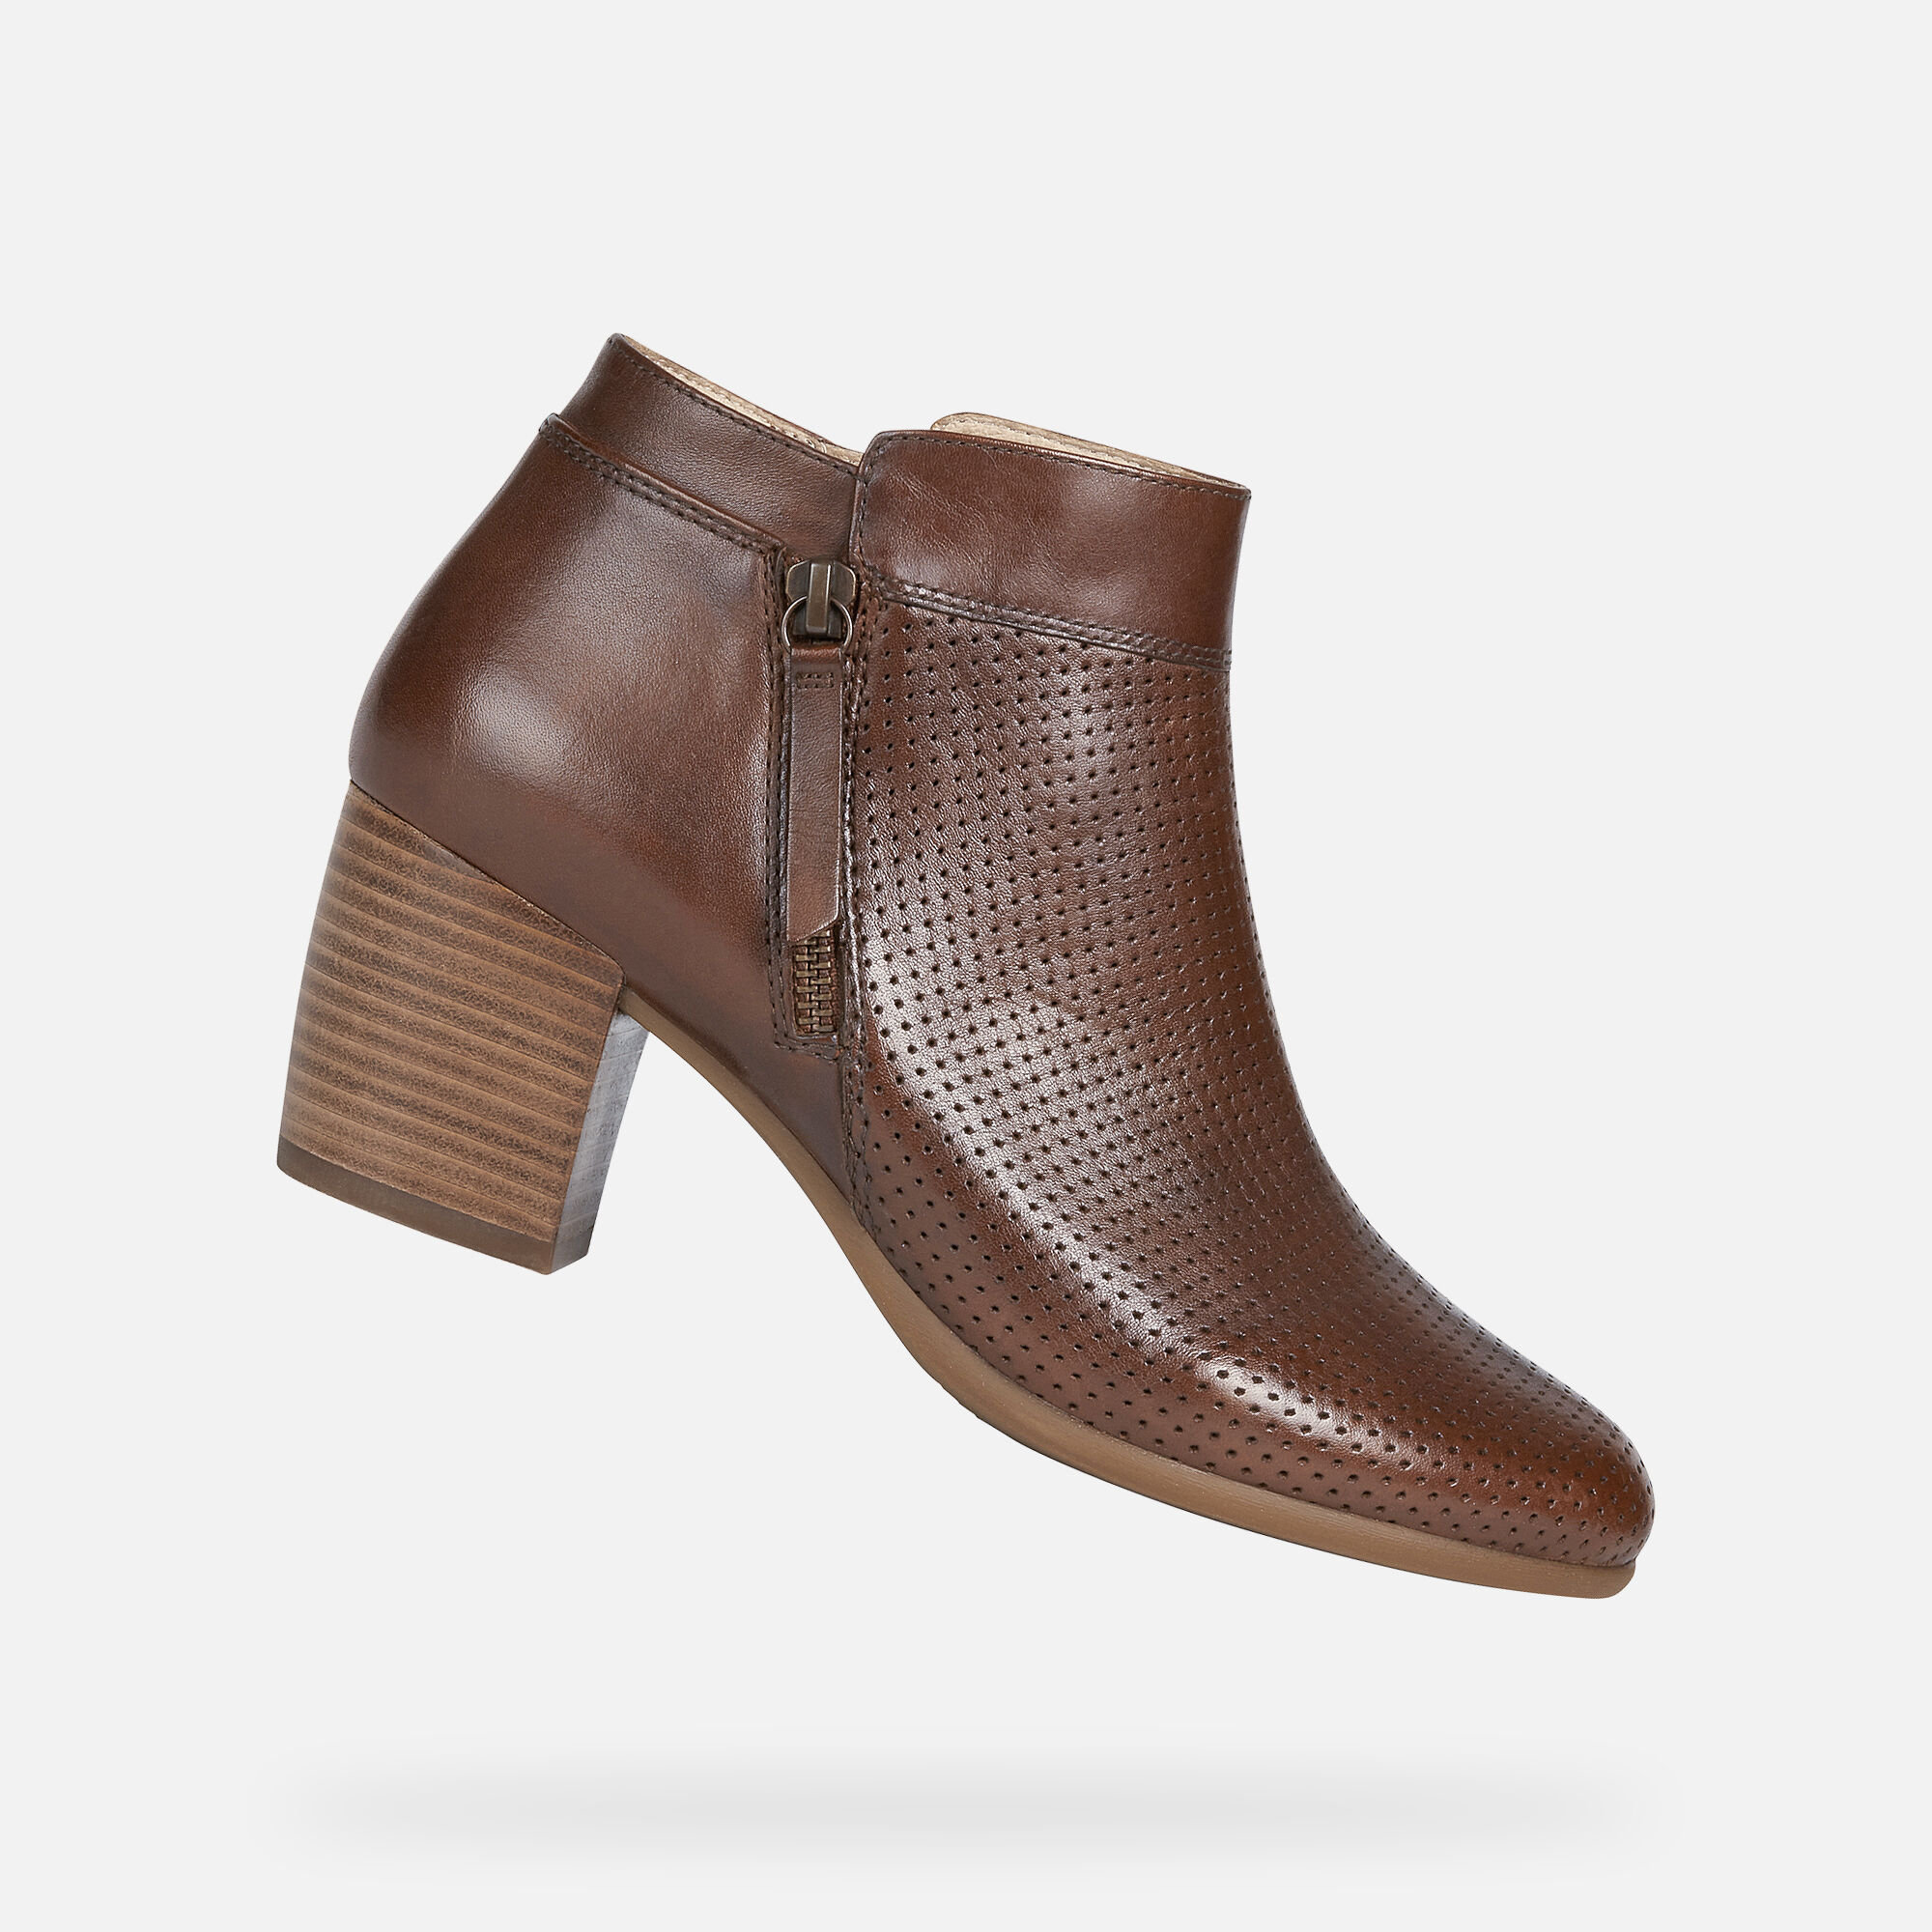 Cuatro chorro Integral  geox lucinda respira leather booties review 10fa2 61df3